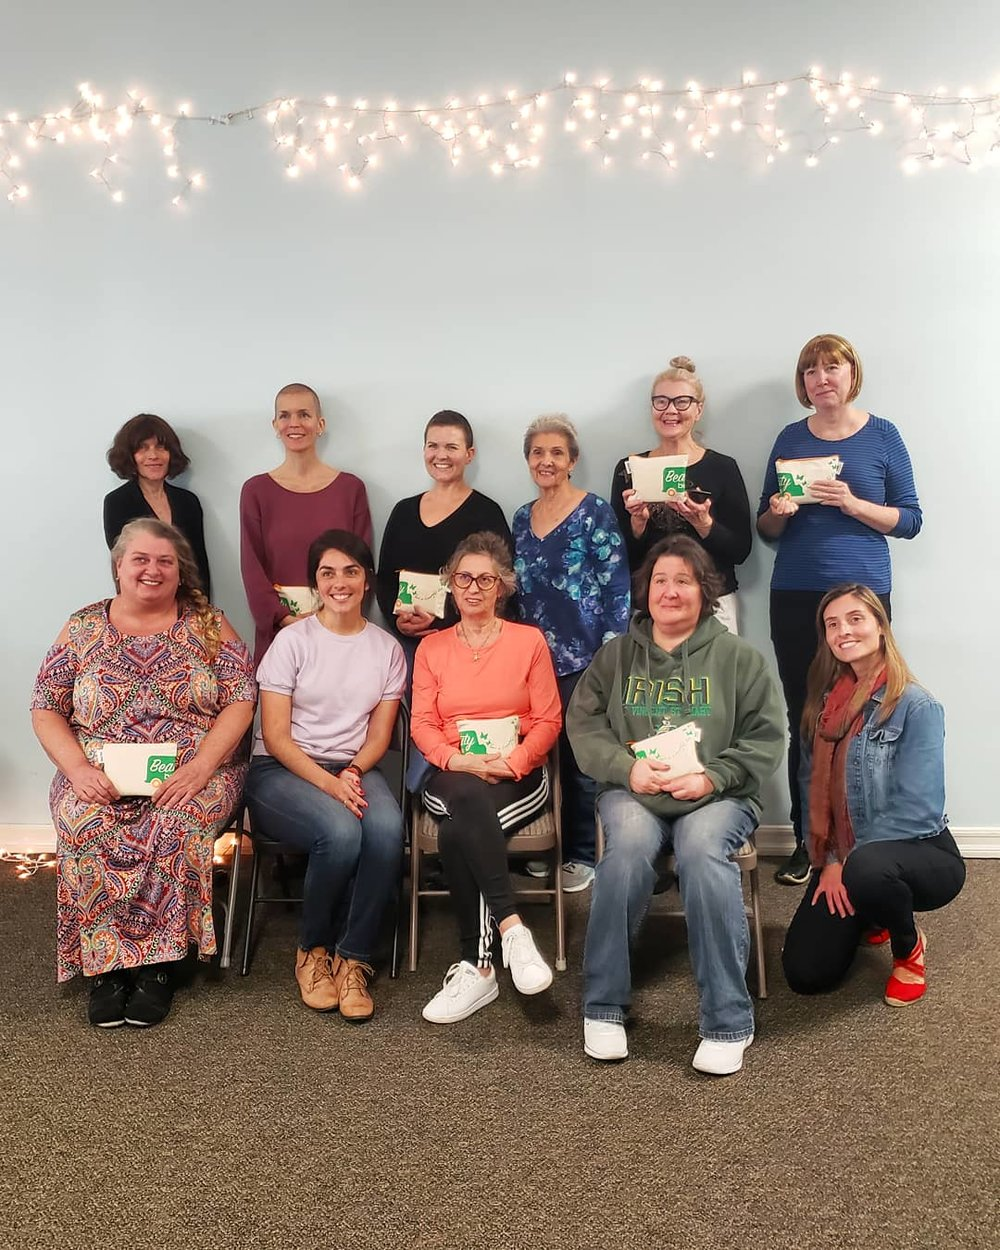 Thanks to this wonderful group at weSPARK Cancer Support Community for being such thoughtful and kind participants!